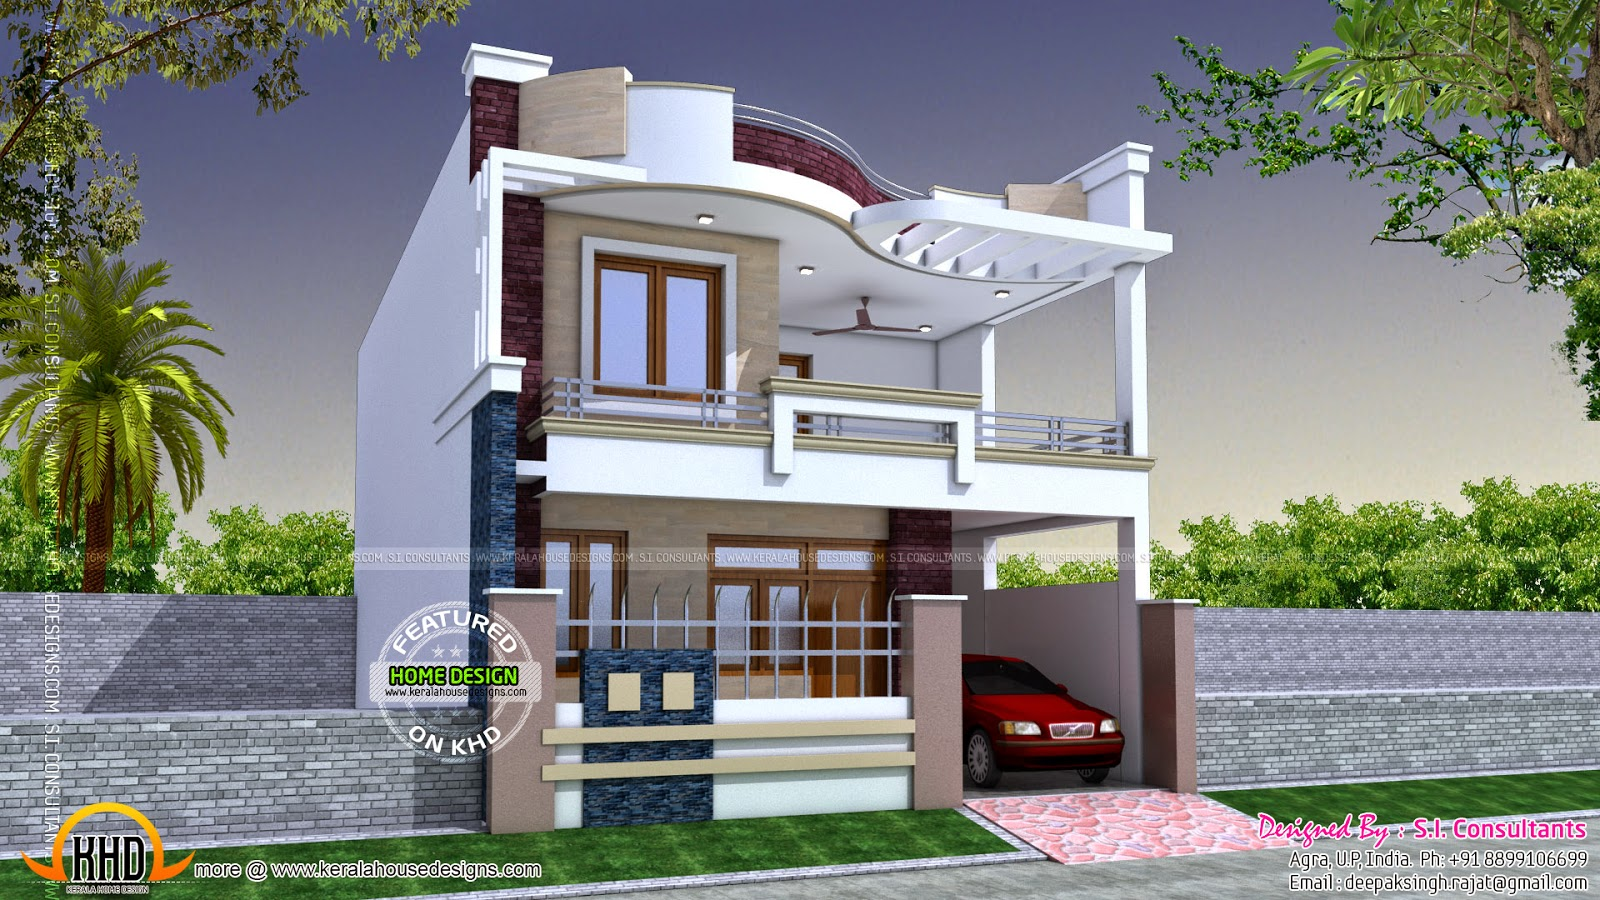 Modern indian home design kerala home design and floor plans for Best house designs